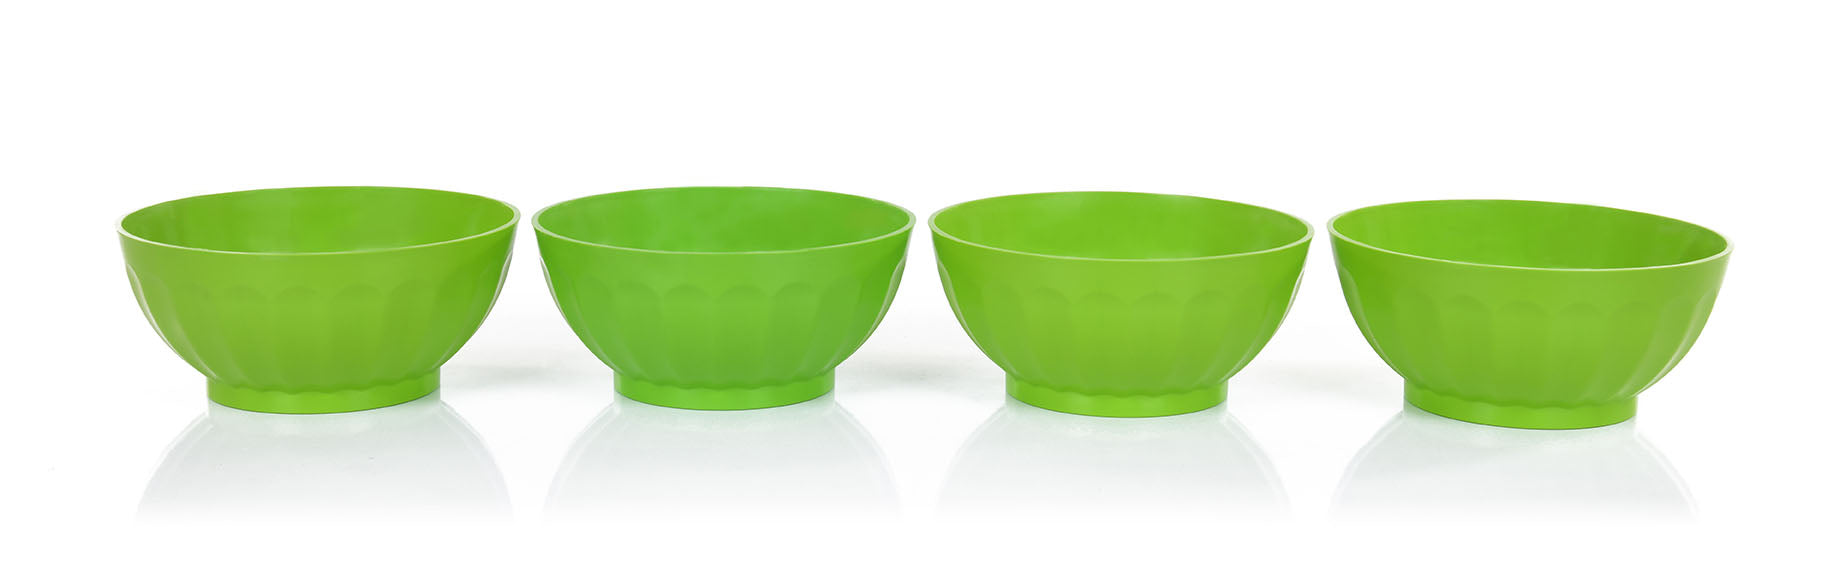 Mintra Unbreakable Plastic Bowl - 4 Pack Large 1.8 L - Mintra USA